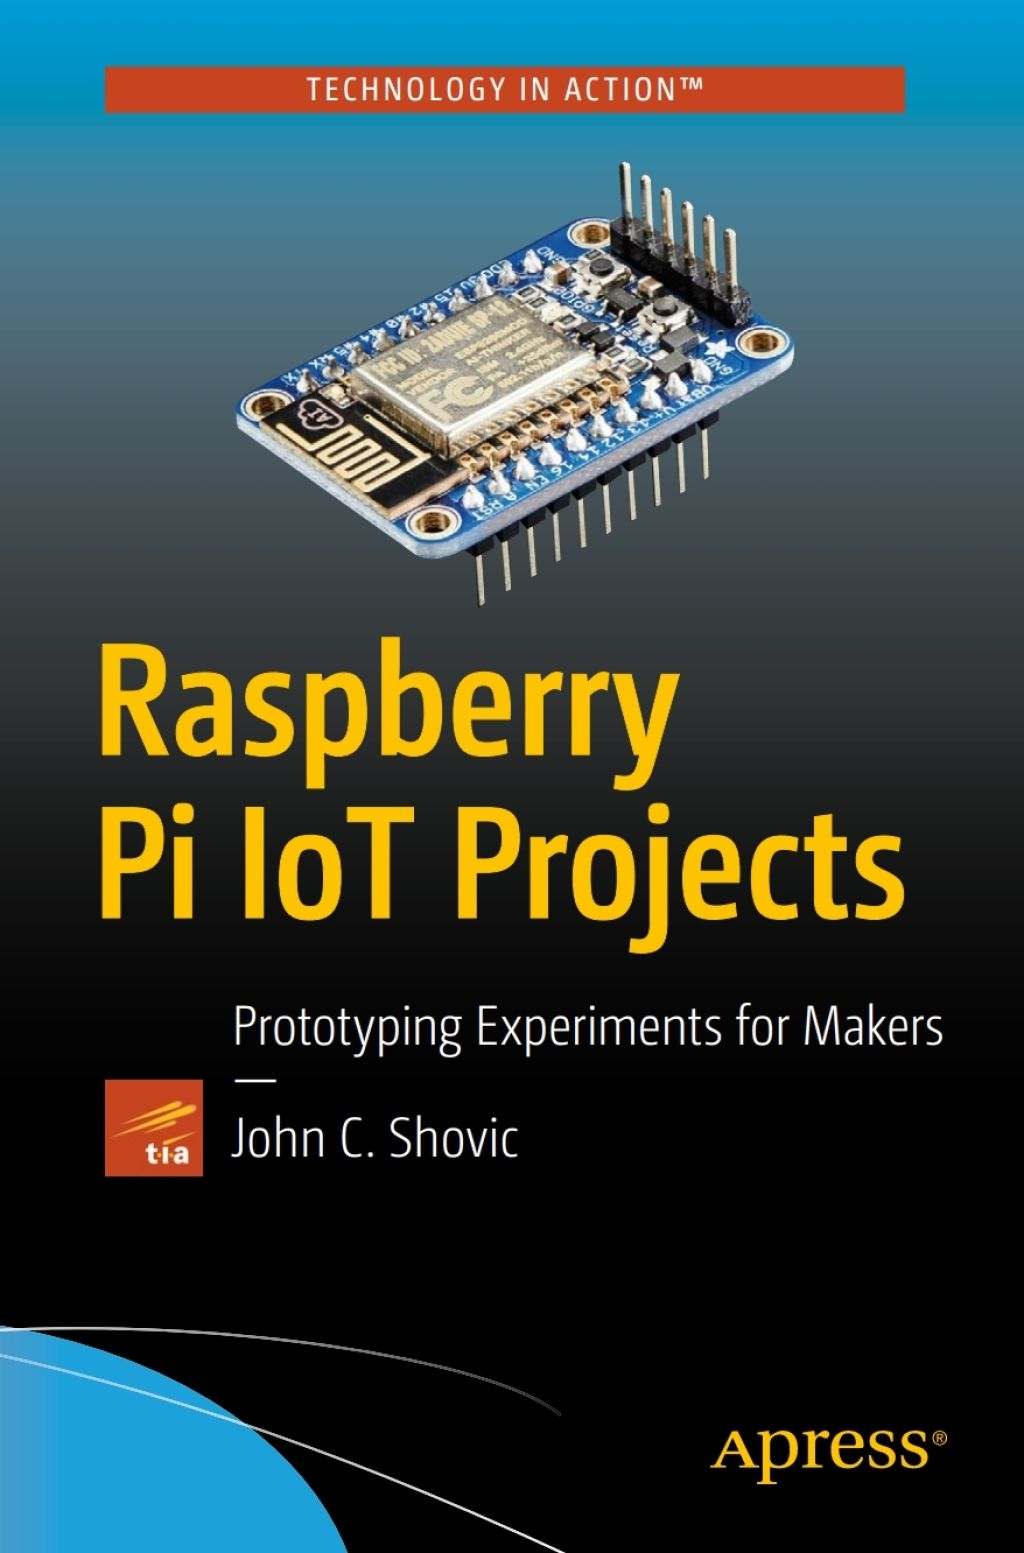 Raspberry Pi IoT Projects (eBook) in 2019 | Products | Raspberry pi